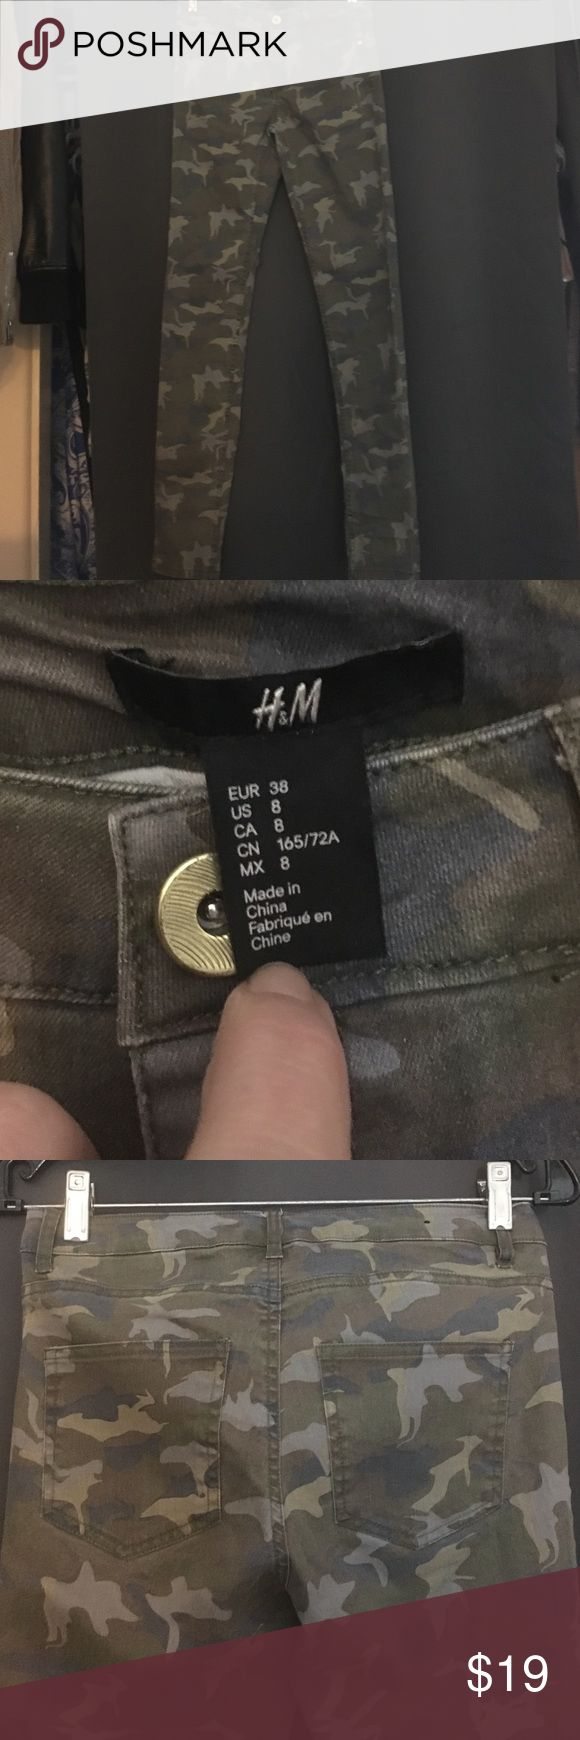 """H&M camo jeans sz 8 Worn once. Perfect like new condition. Inseam 32"""". They are a size 8 but I think that their sizes are a little off. I'm a size 3 and they fit loosely but they fit. H&M Jeans Skinny"""